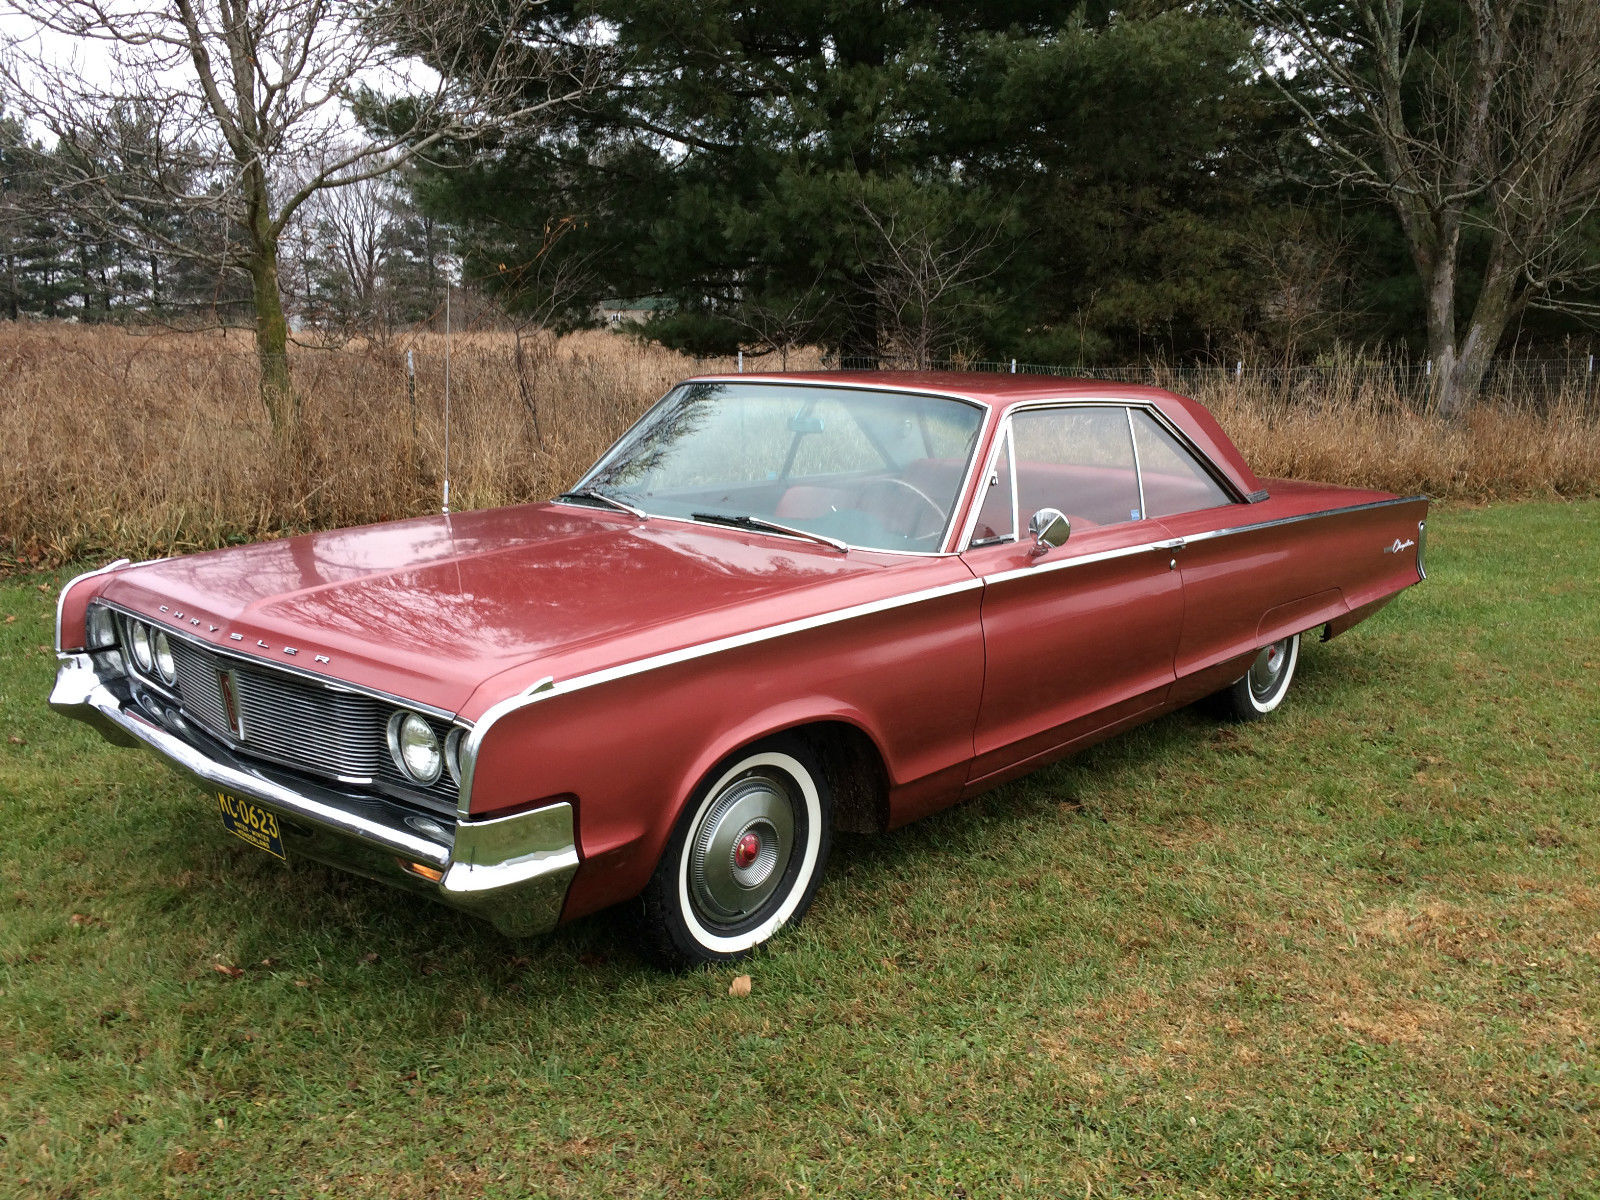 1964cadillacdevillewiringdiagrams l 00abd9f580de4b05 furthermore  in addition  besides  moreover  furthermore 97 Ford Taurus Fuse Box Map besides  additionally 91 93 5 0 EEC Wiring Diagram moreover Rover200HeaterBlowerWiringDiagram also  furthermore 0900c152800a9e06. on 2011 bmw 3 stereo wiring diagram